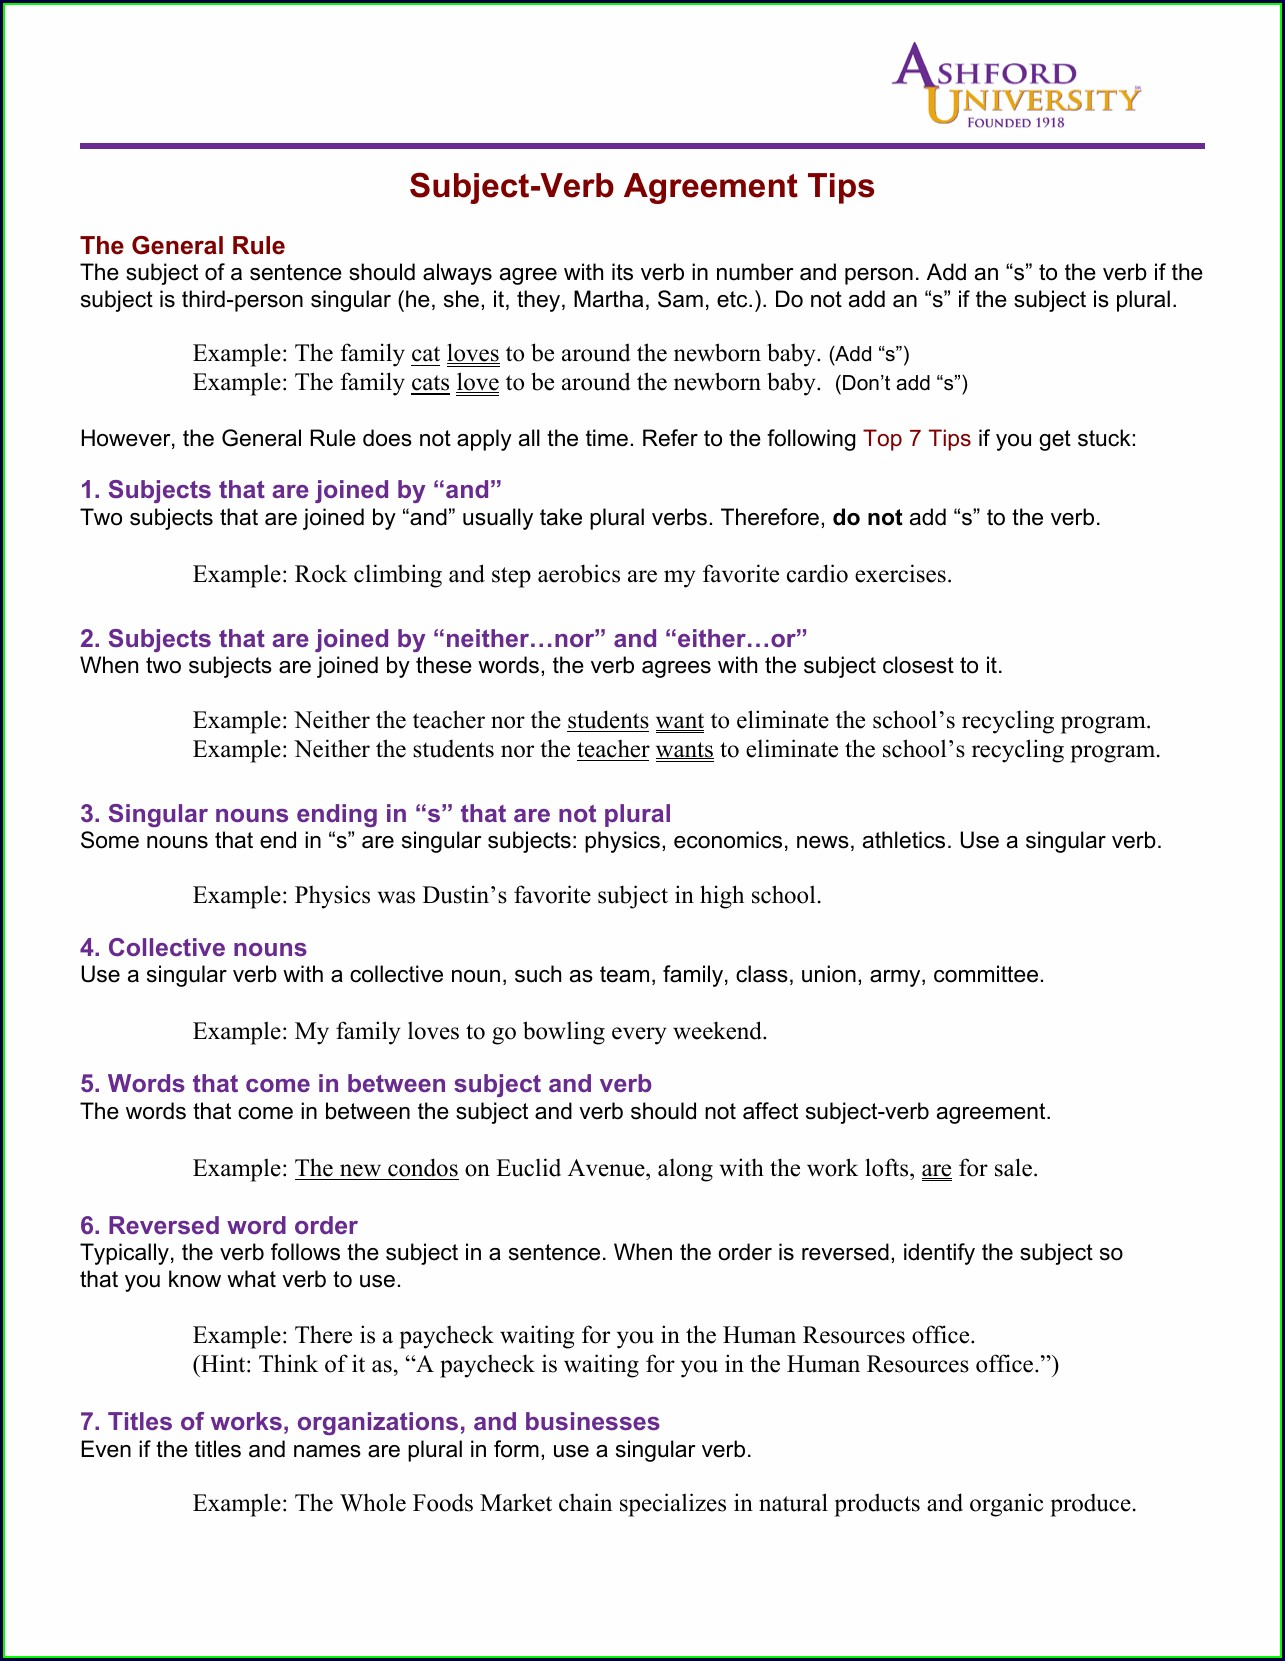 Subject Verb Agreement Exercises On Collective Nouns